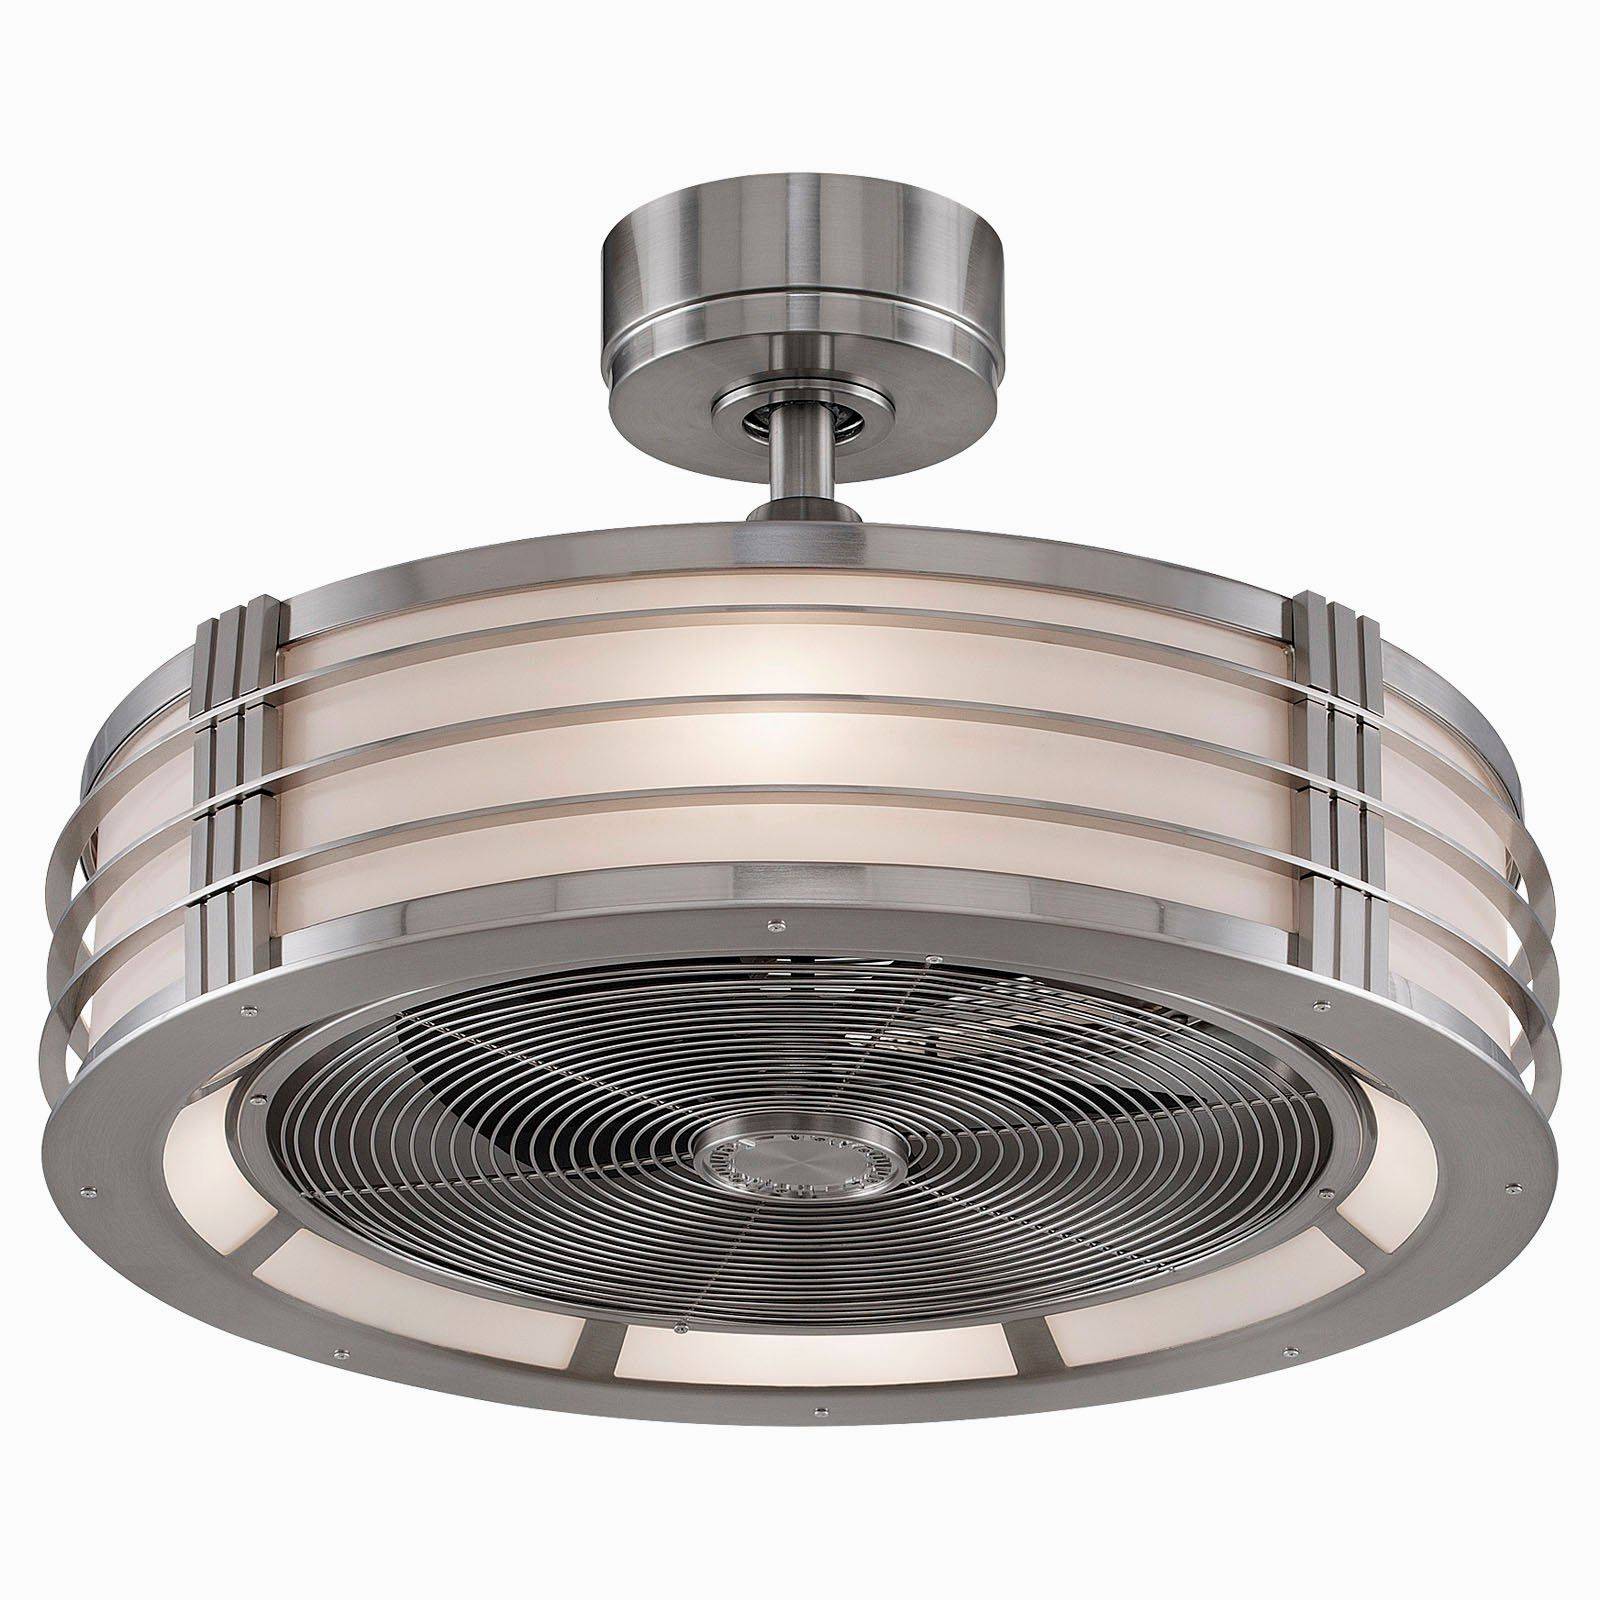 Luxury Bathroom Exhaust Fan Replacement Parts Collection Fresh Bathroom  Exhaust Fan Replacement Parts Layout